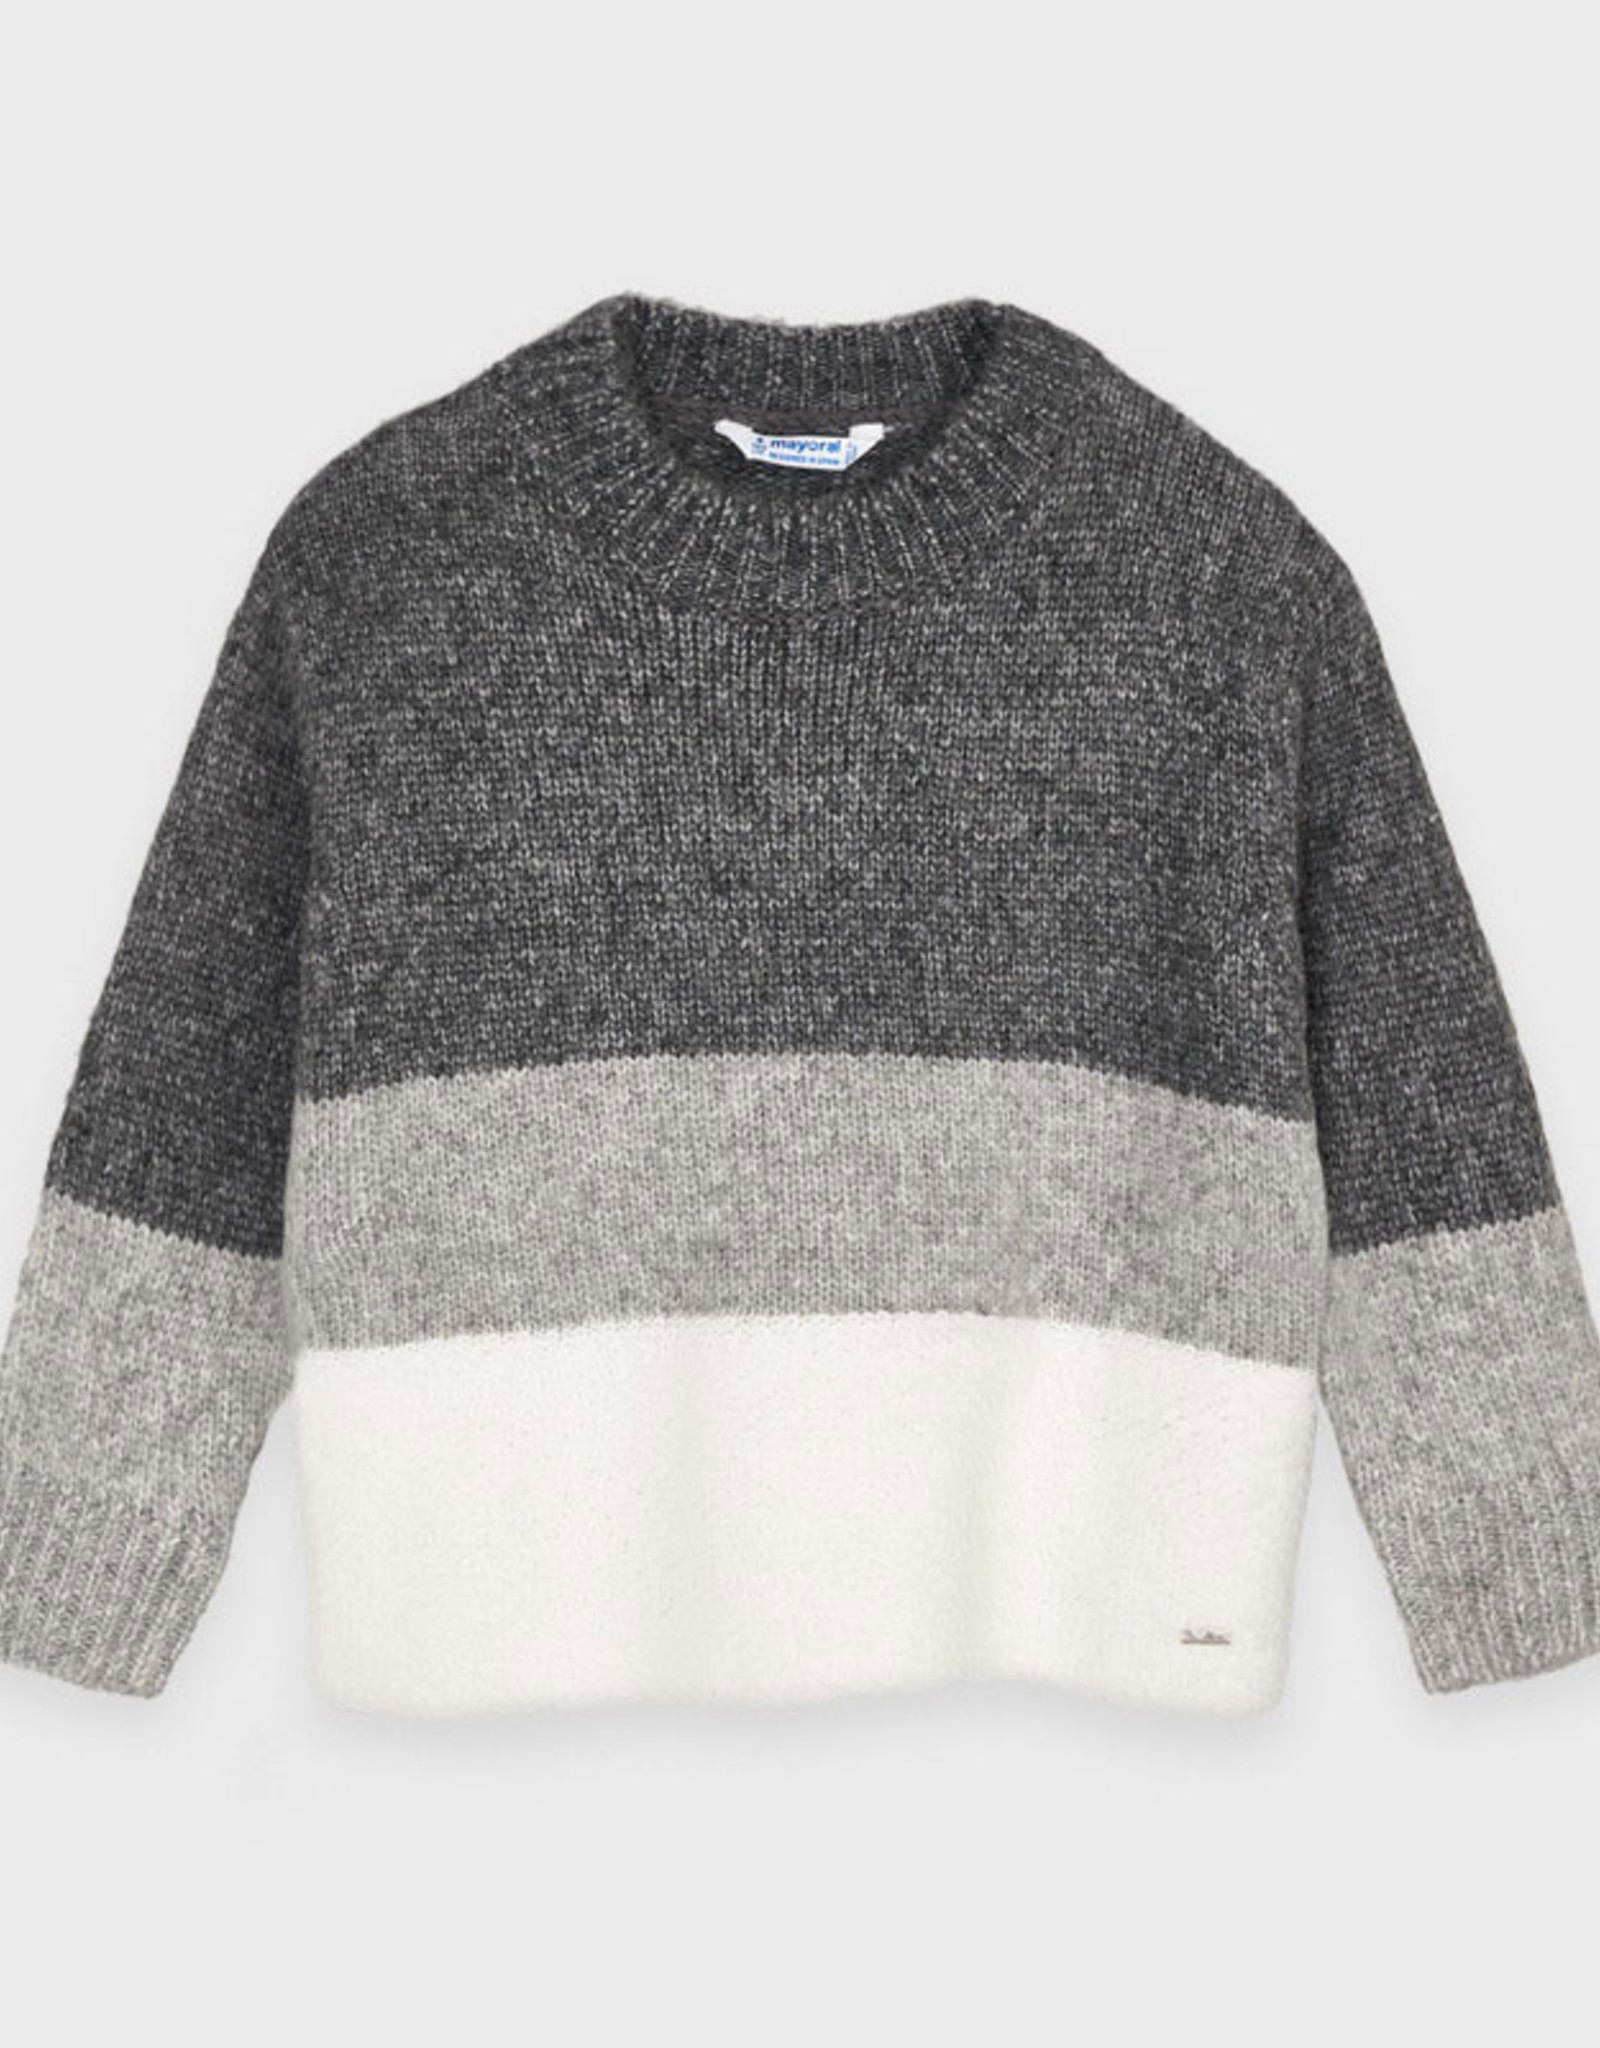 Mayoral FA20 Tri-Tone Grey Sweater